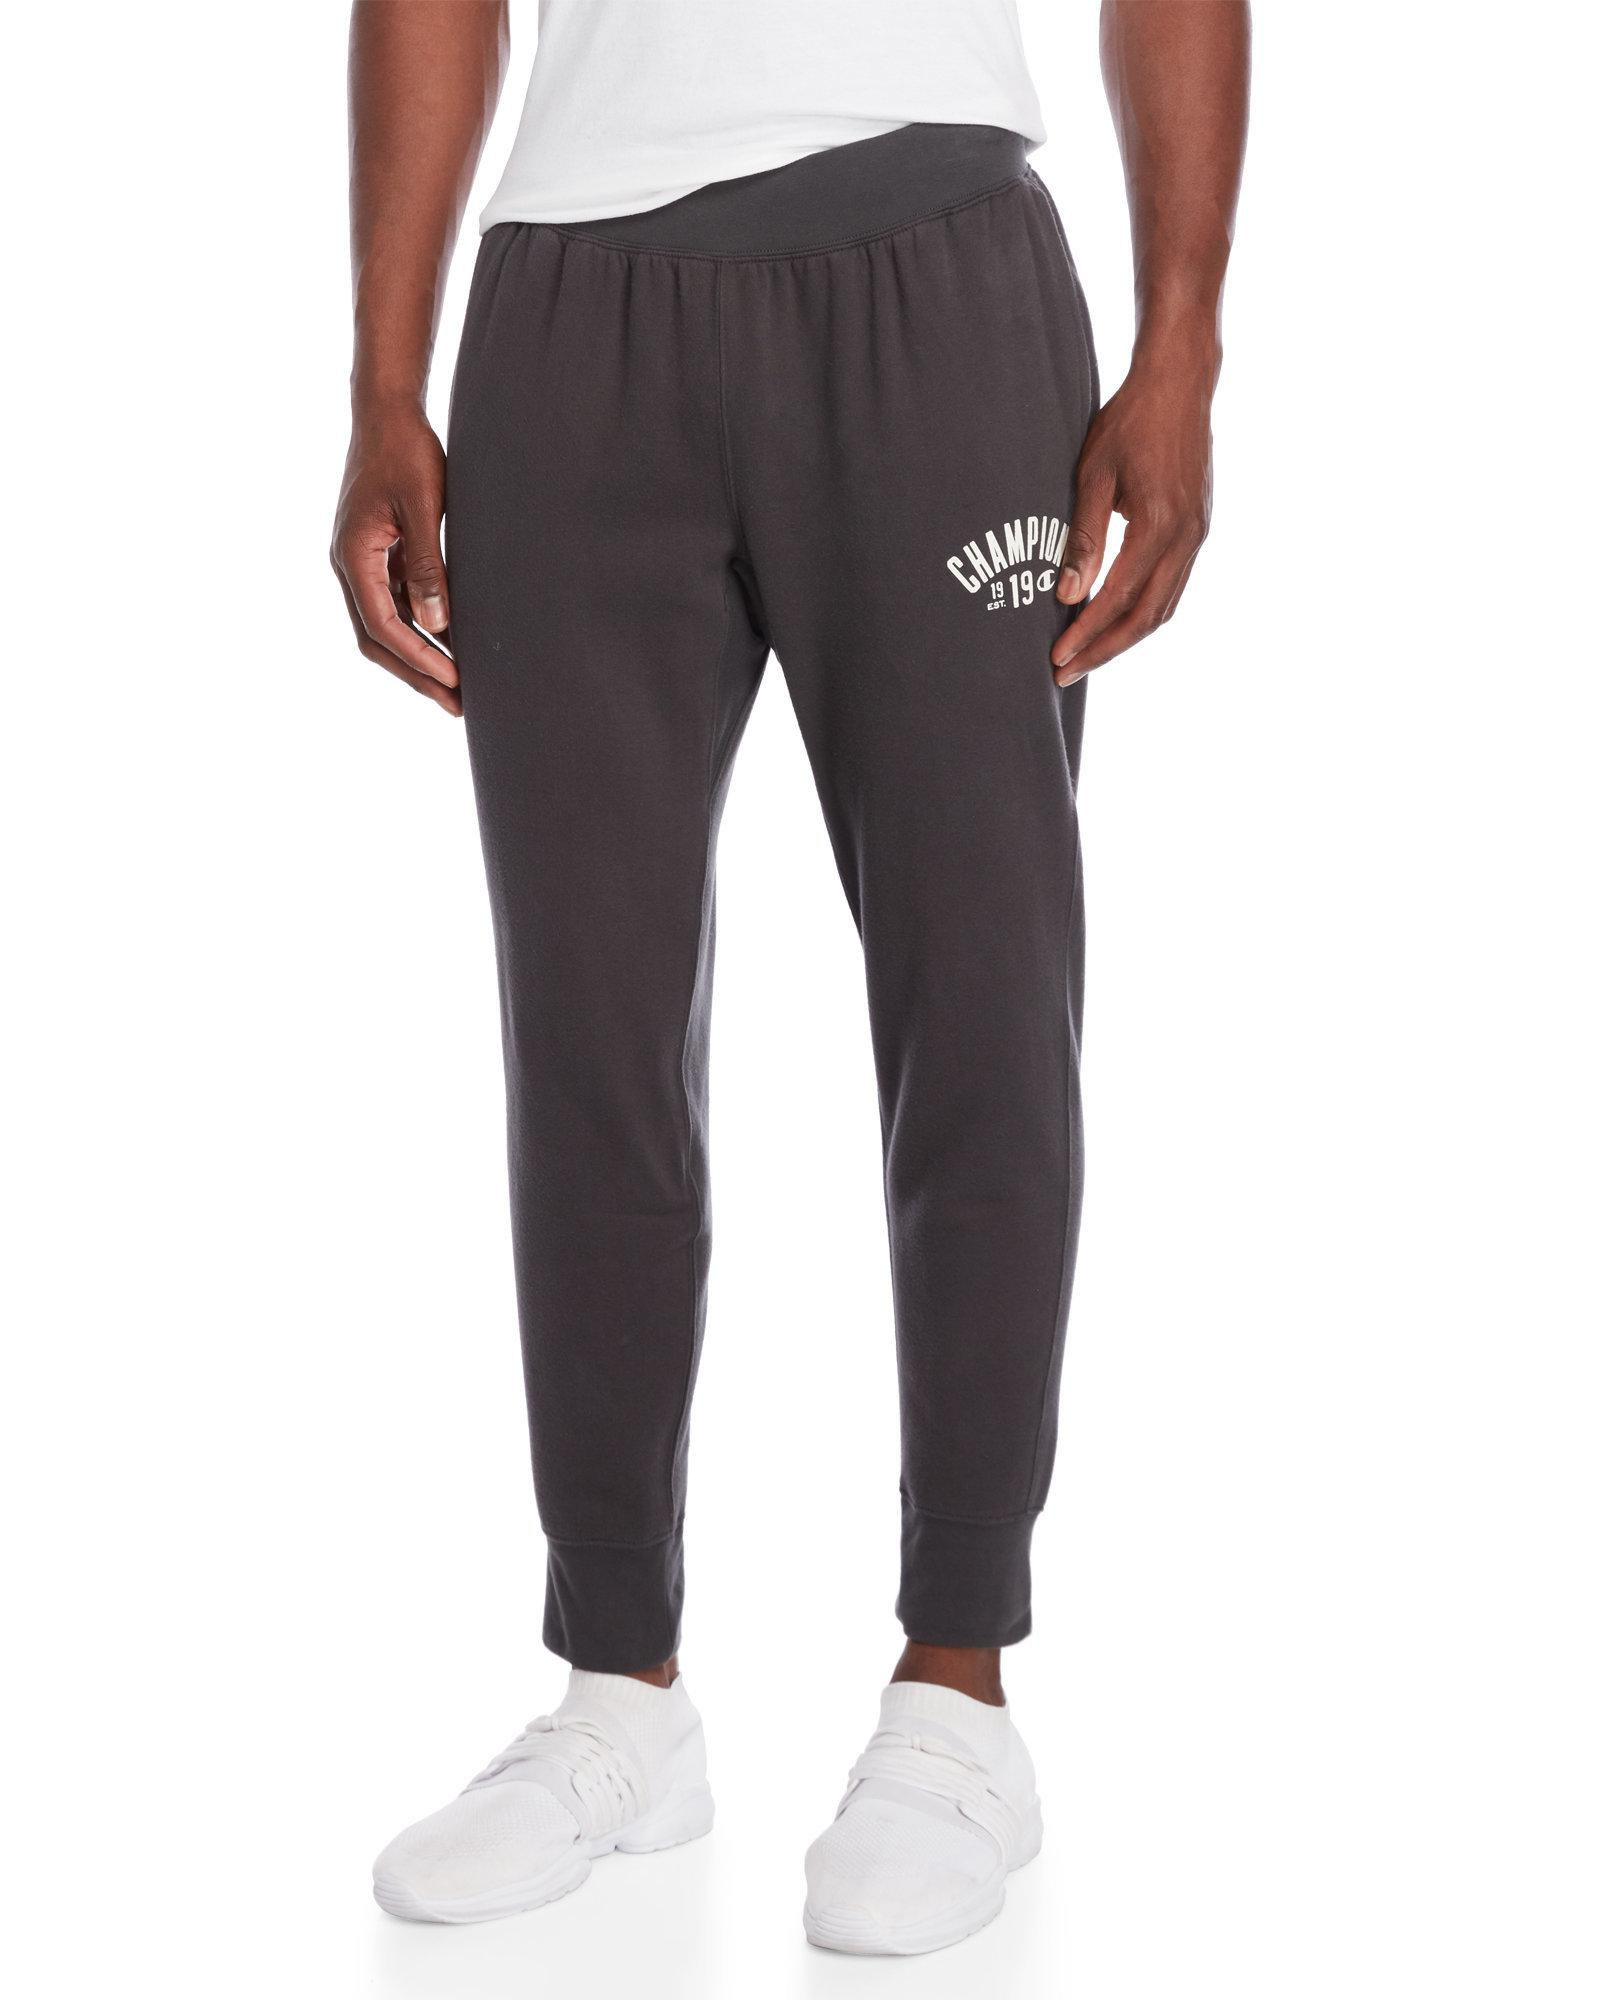 6270a4bca1355e Lyst - Champion Charcoal Fleece Arch Logo Joggers in Gray for Men